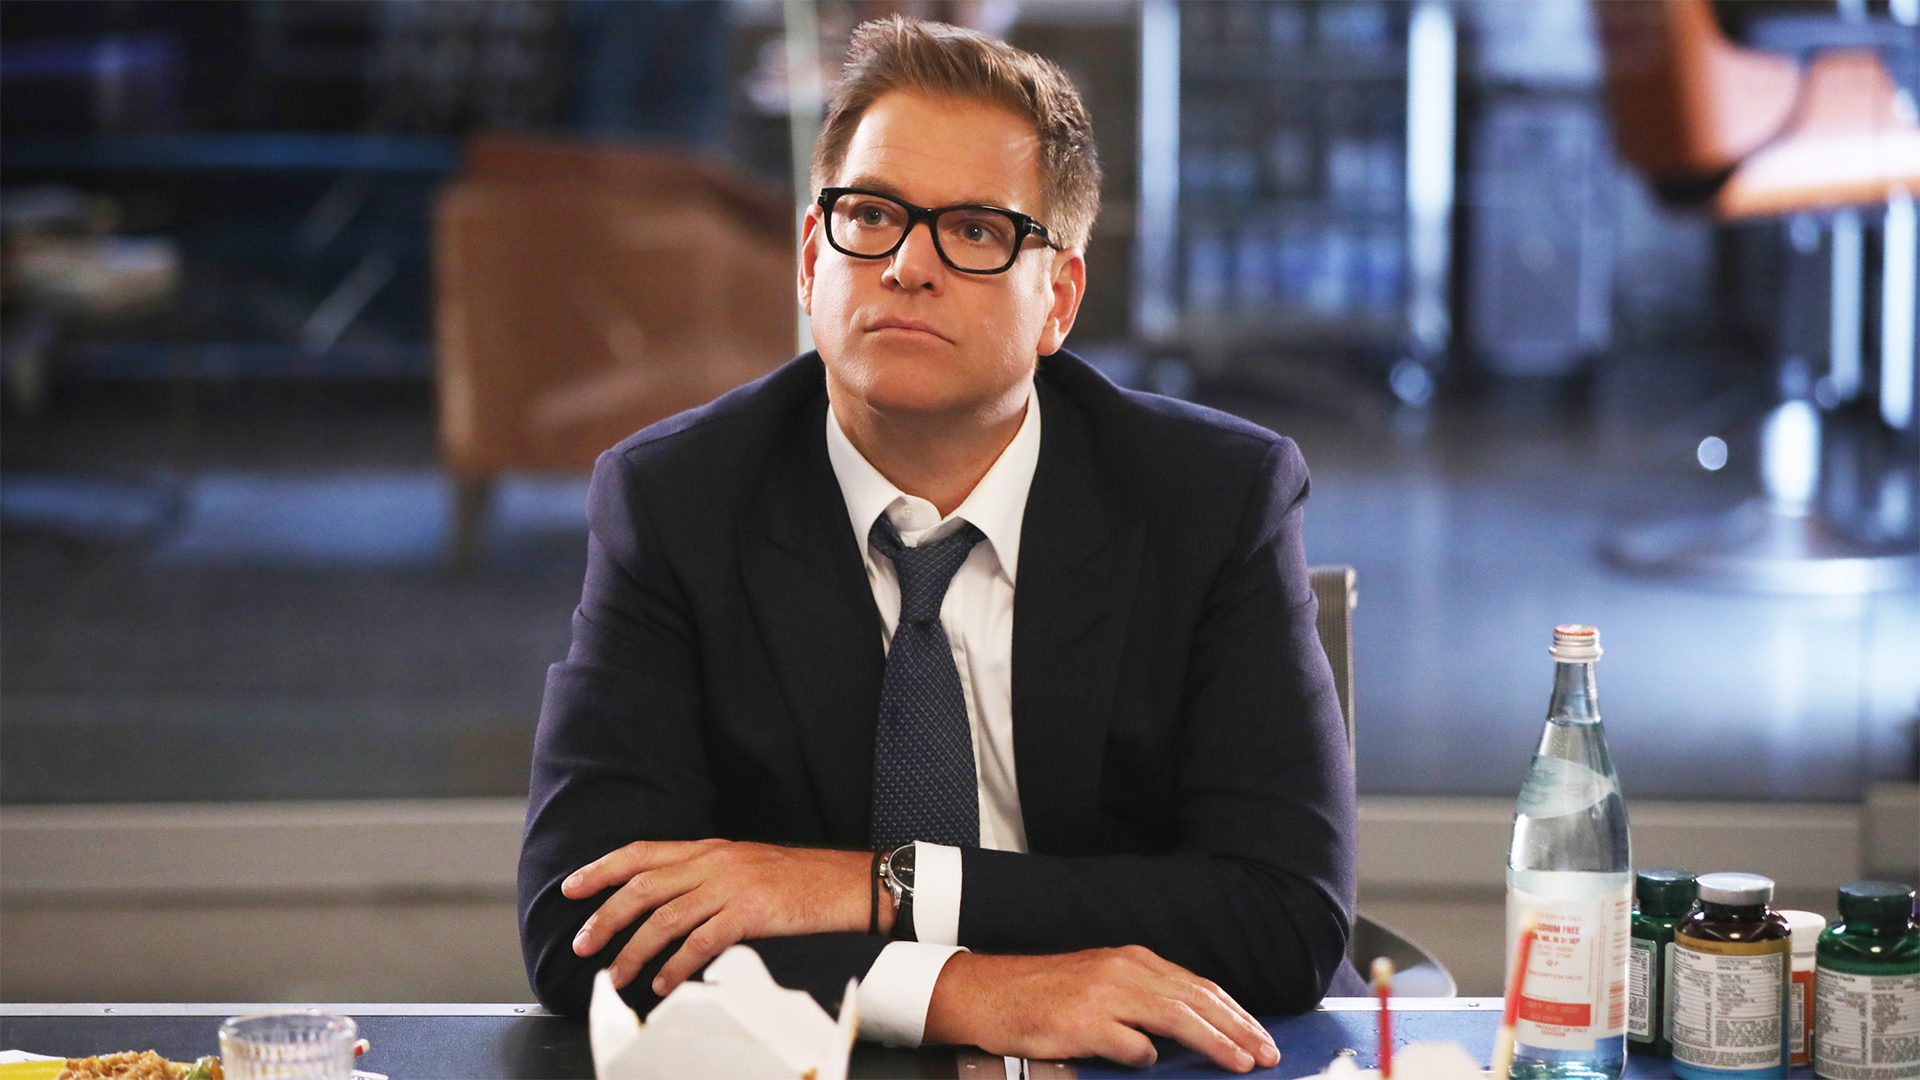 Watch Bull Season 3 Episode 1: The Ground Beneath Their Feet - Full show on  CBS All Access